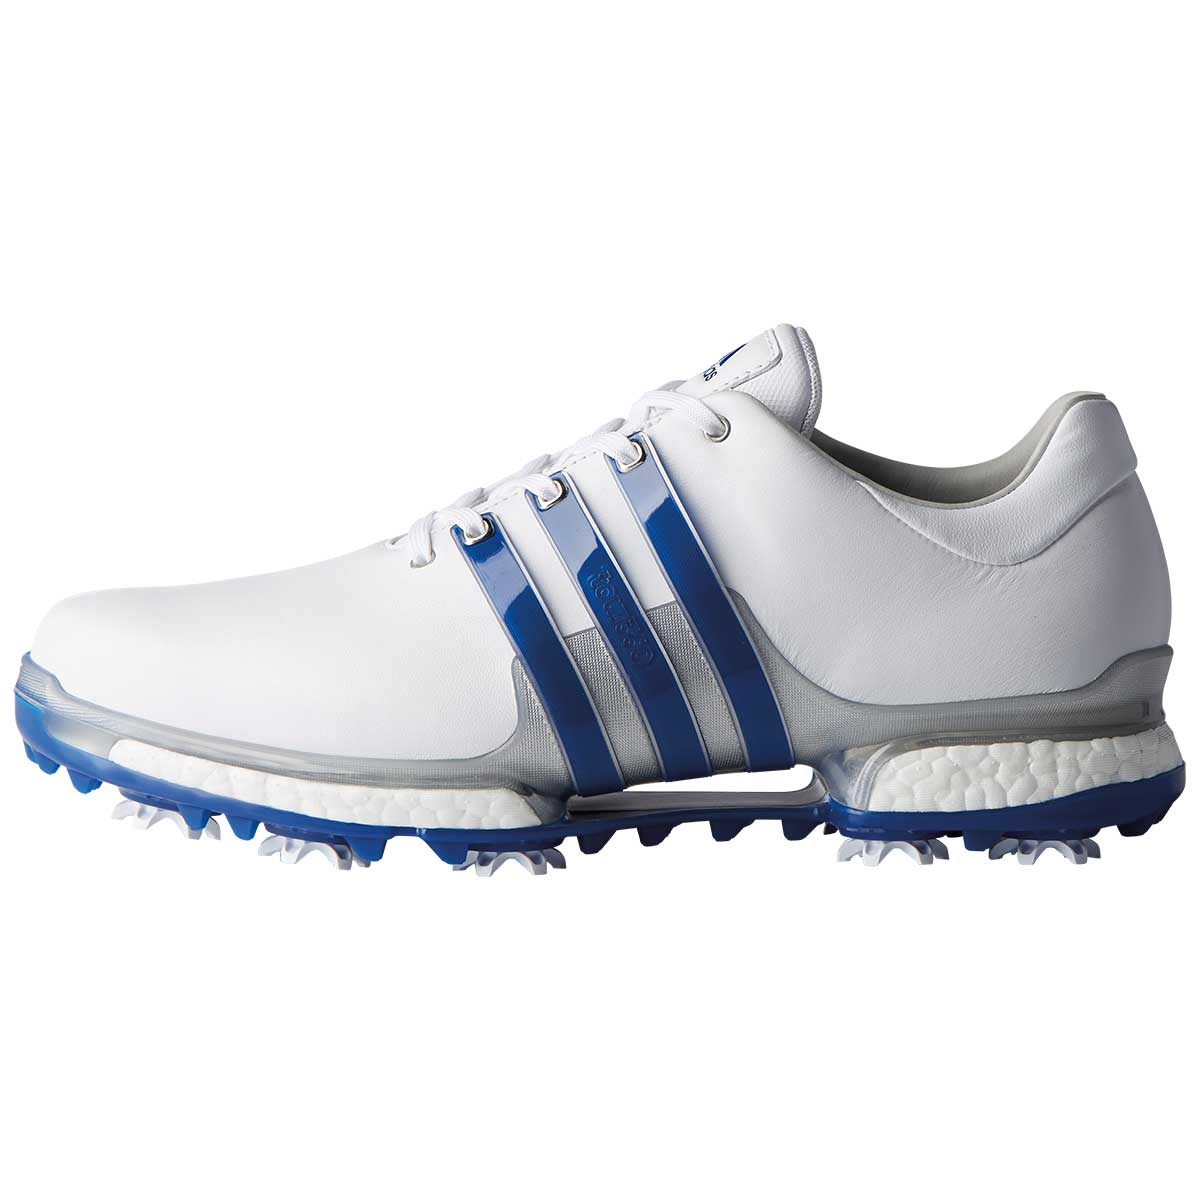 Adidas Tour 360 Boost 2.0 White/Blue Golf Shoes